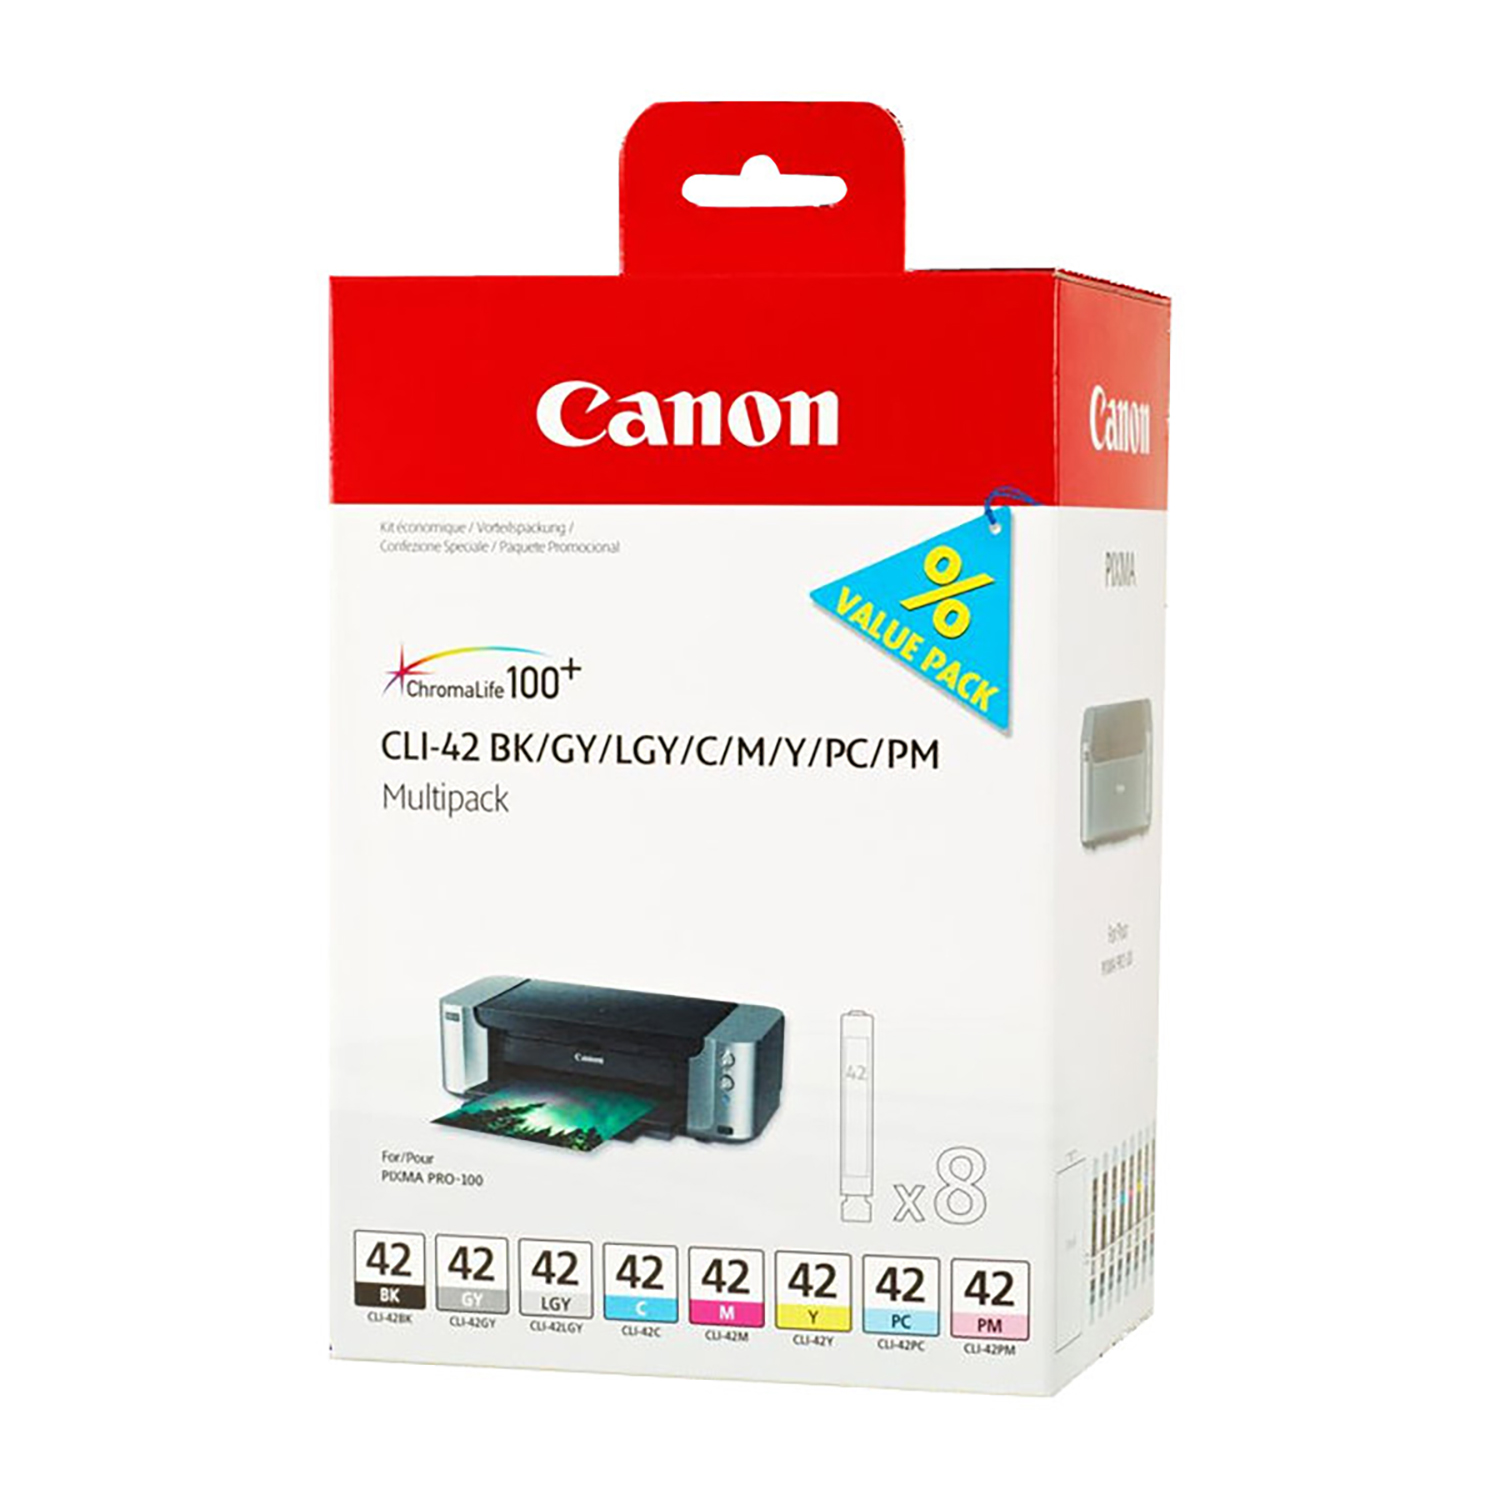 Canon CLI-42 InkJet Cartridge Multipack 104ml BKGYLGY/C/M/Y/PC/PM Ref 6384B010 [Pack 8]